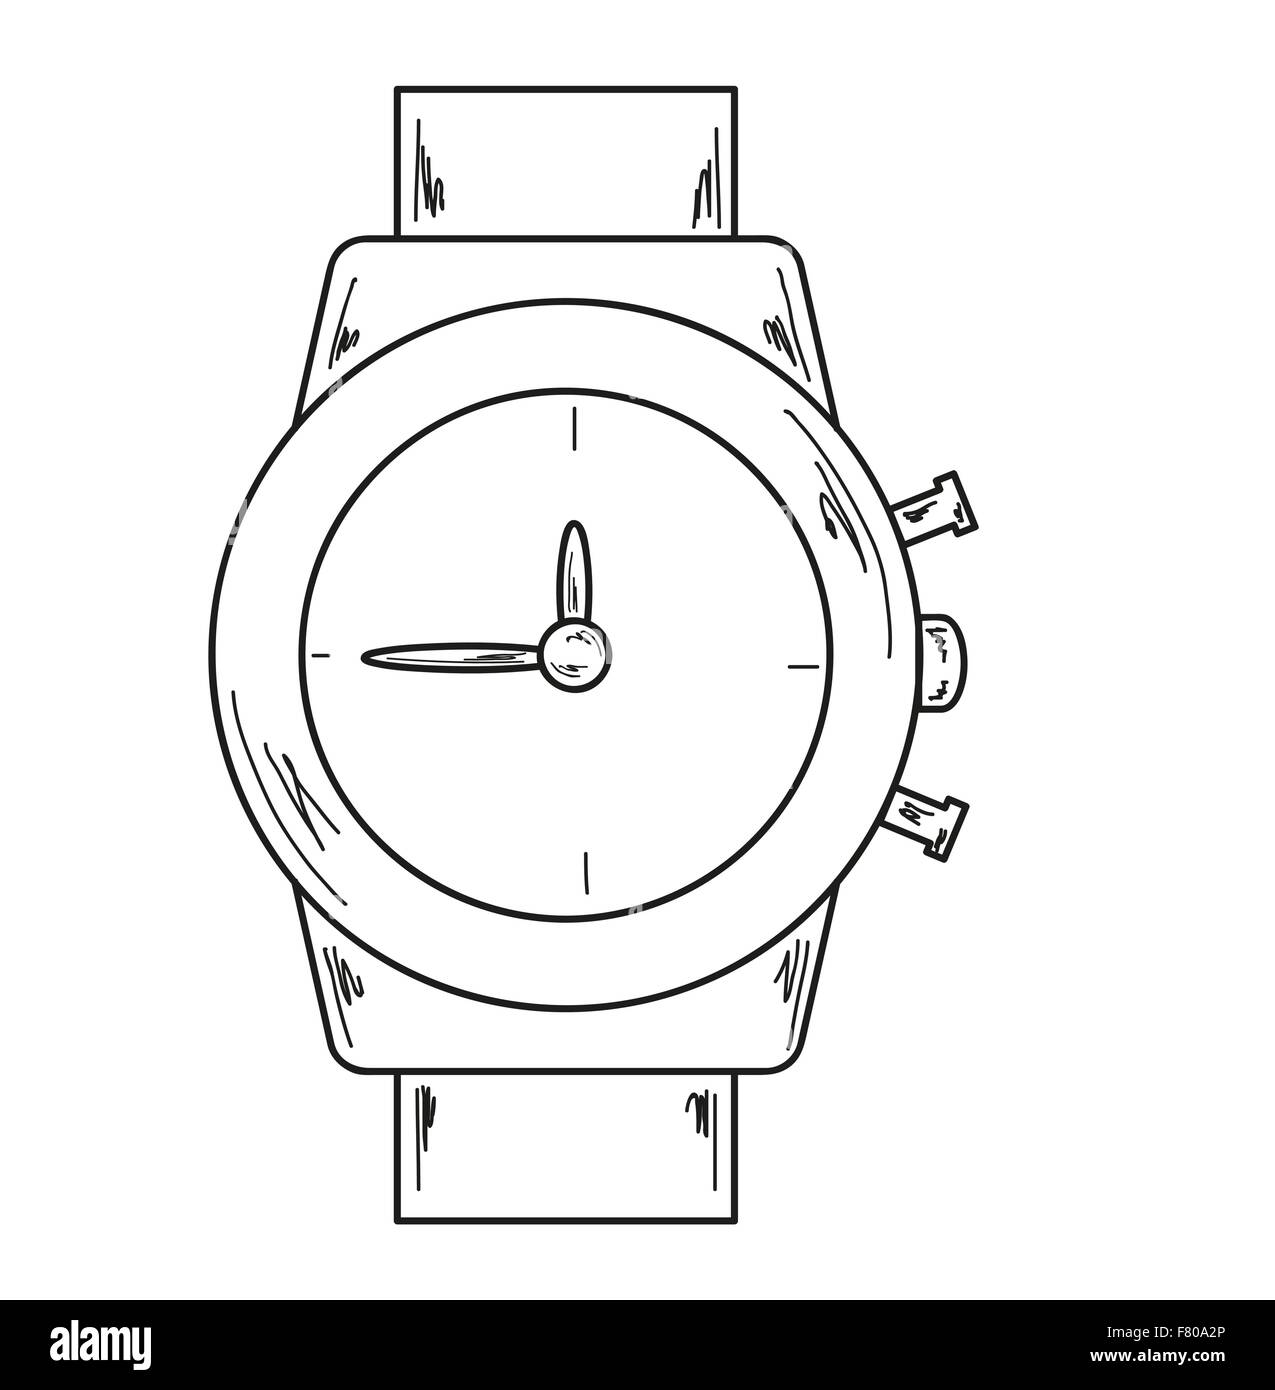 watch, sketch - Stock Image